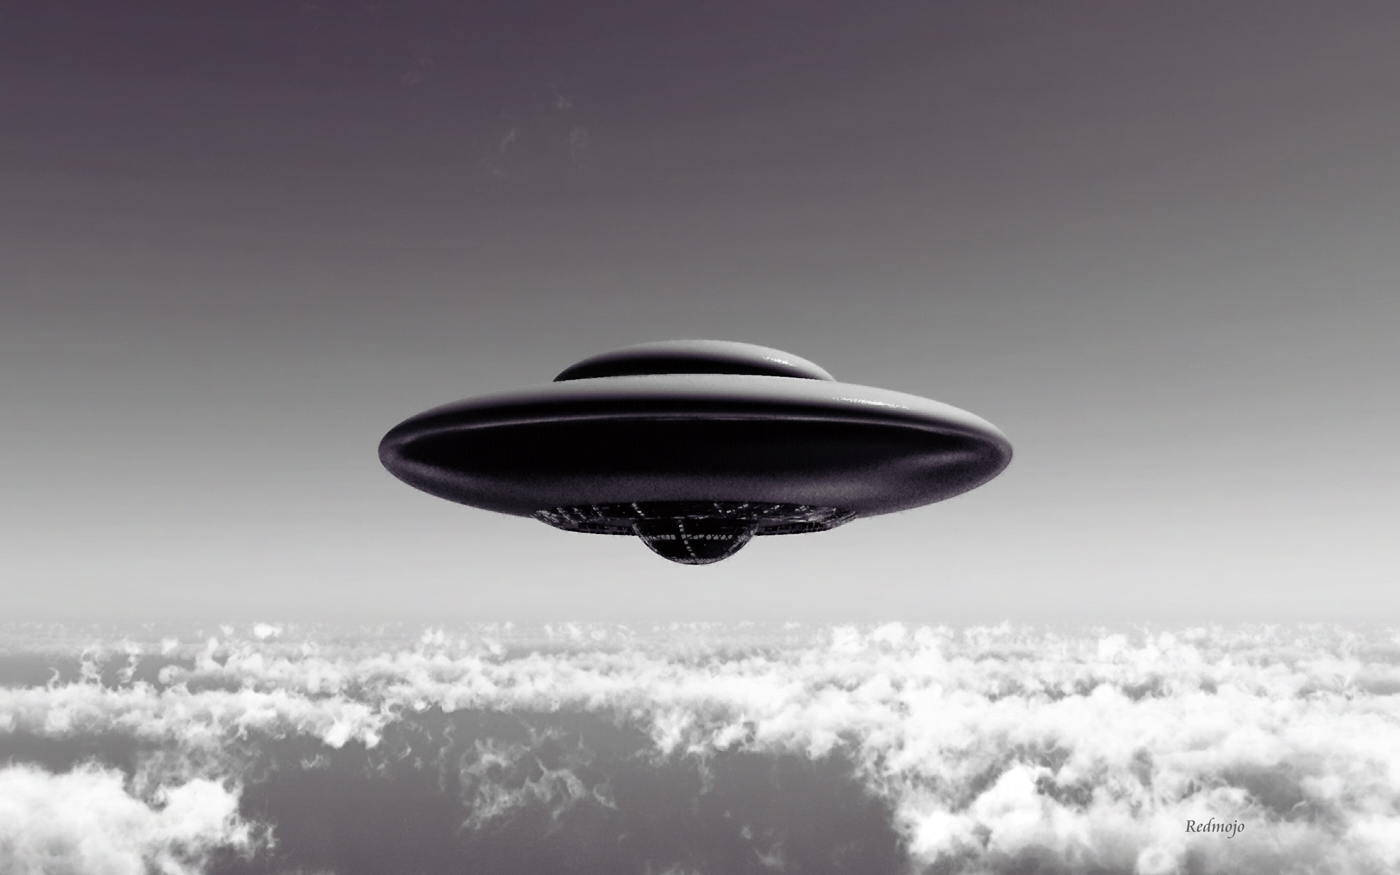 UFO Sighting of the Day – June 05, 2020